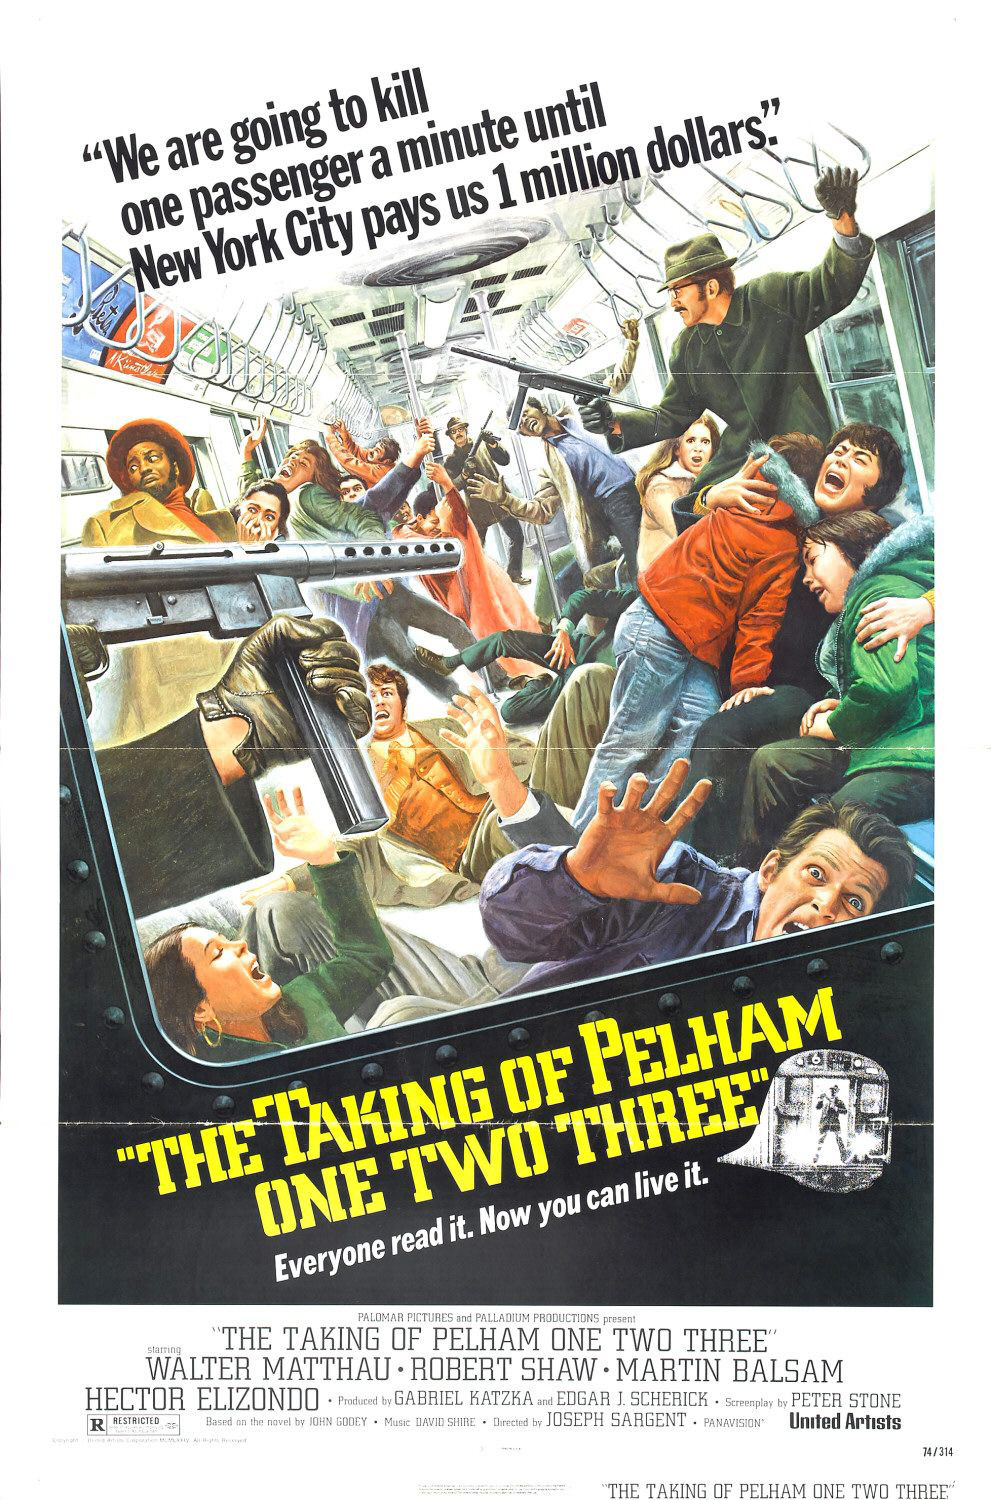 taking-of-pelham-one-two-three-movie-poster-images